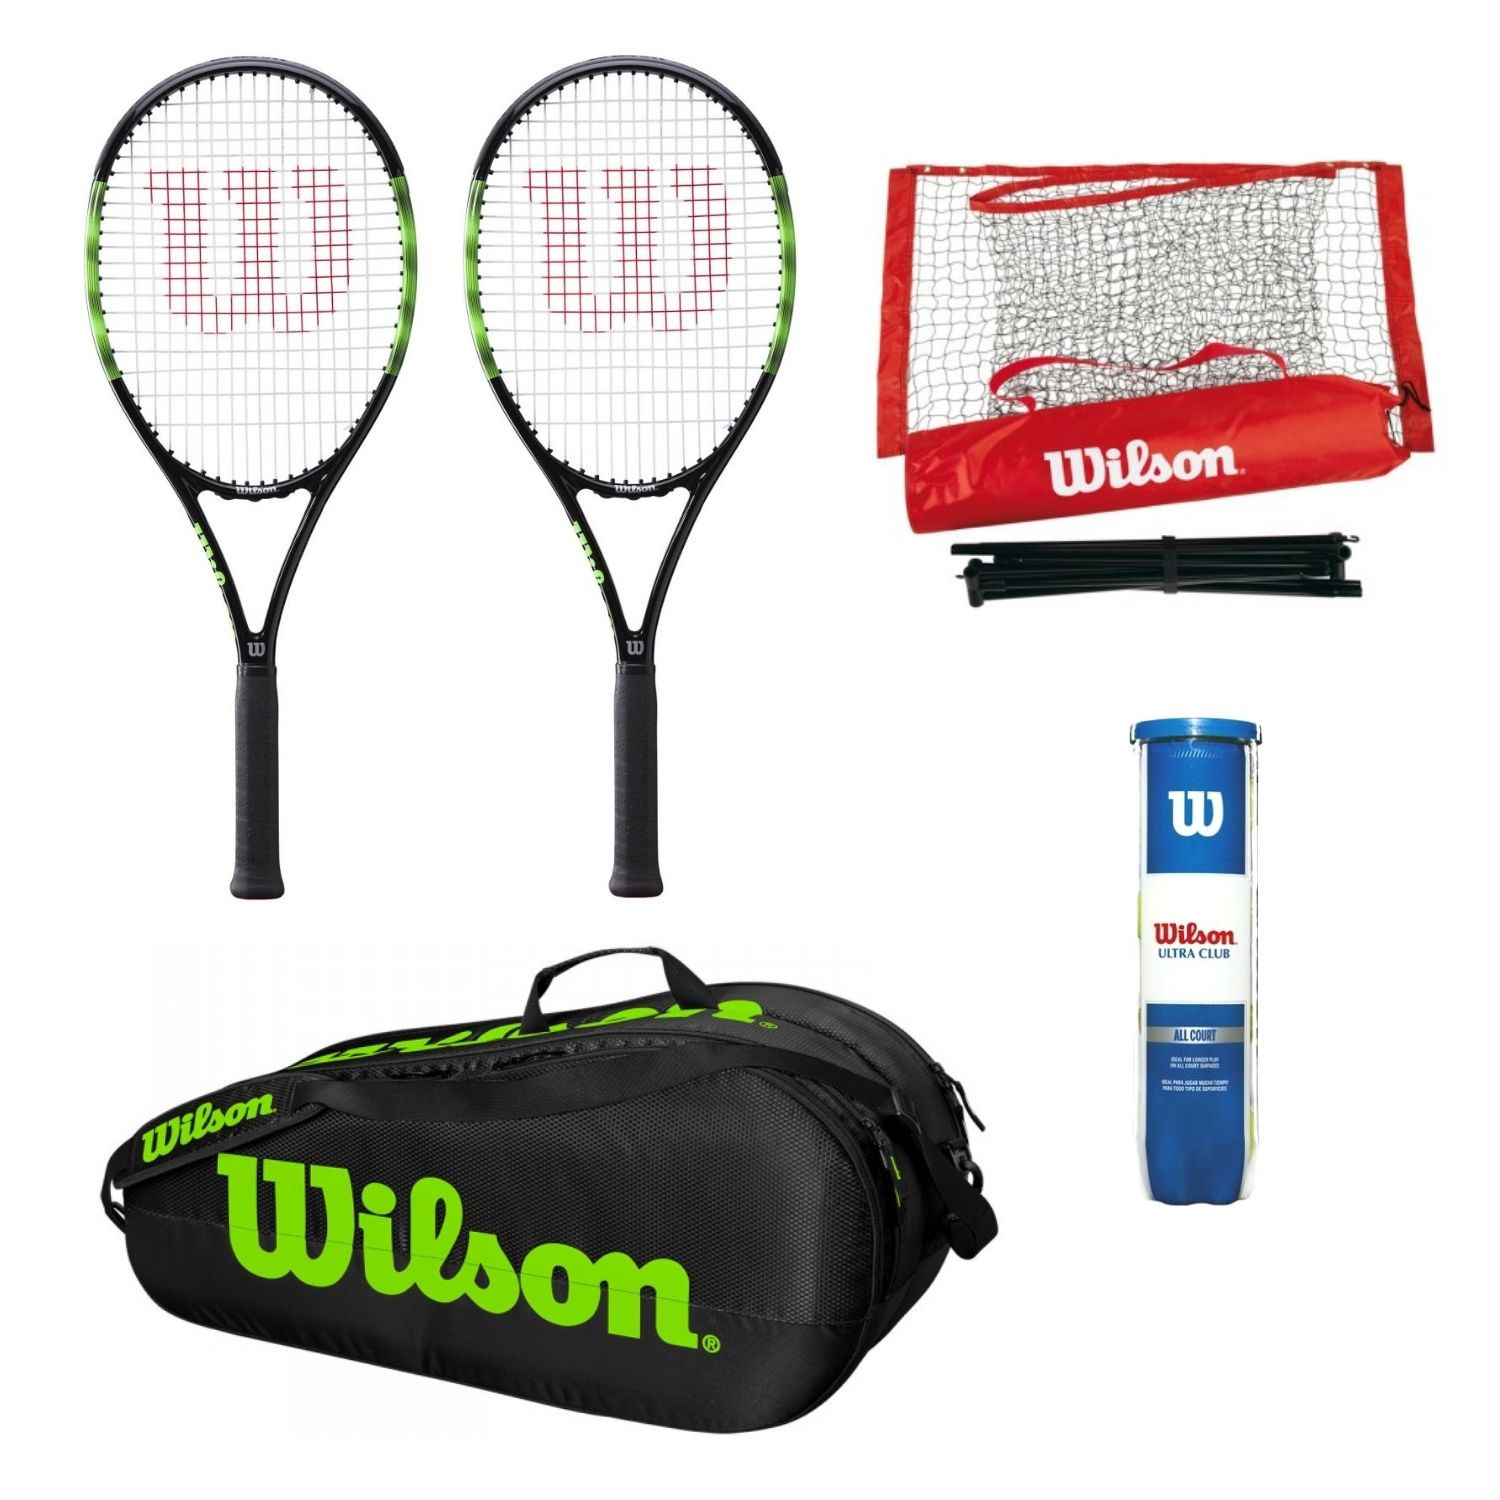 Tenisový set WILSON Blade Feel Team 103  Vak Team 2 Comp  Sieť Starter EZ Tennis Net  Loptičky Ultra Club All Court Zelená L2